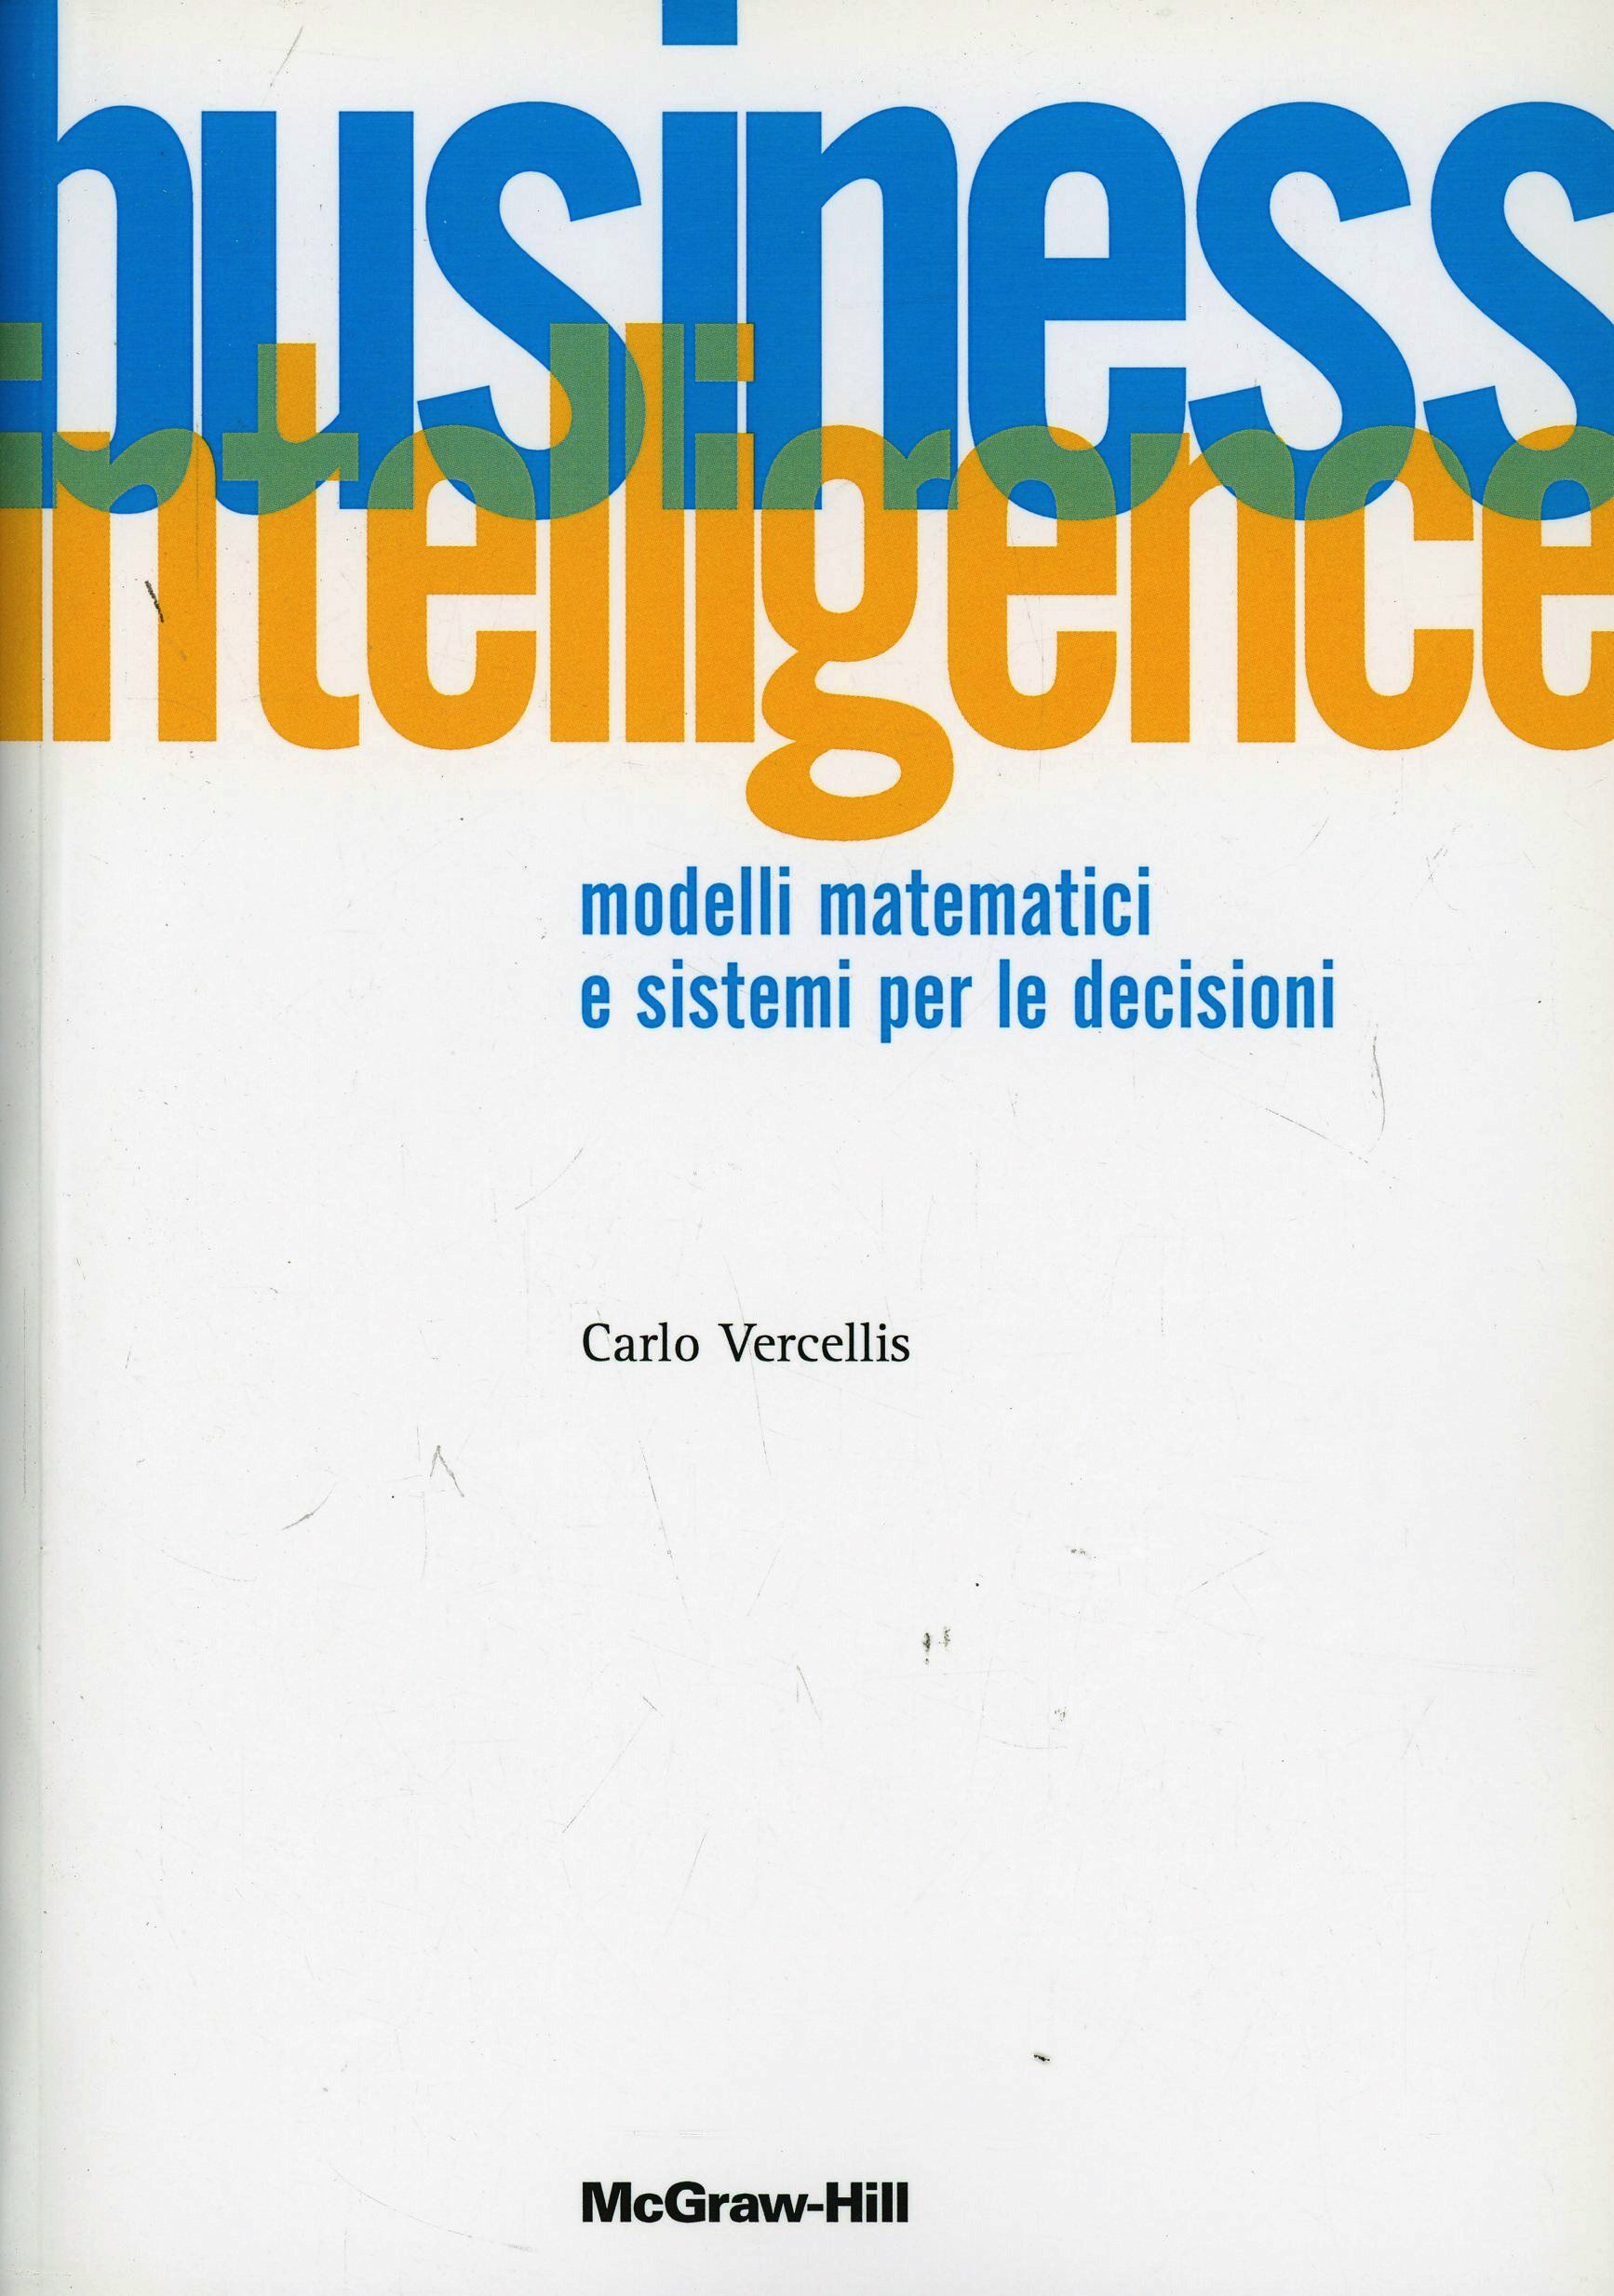 Business intelligence. Modelli matematici e sistemi per le decisioni